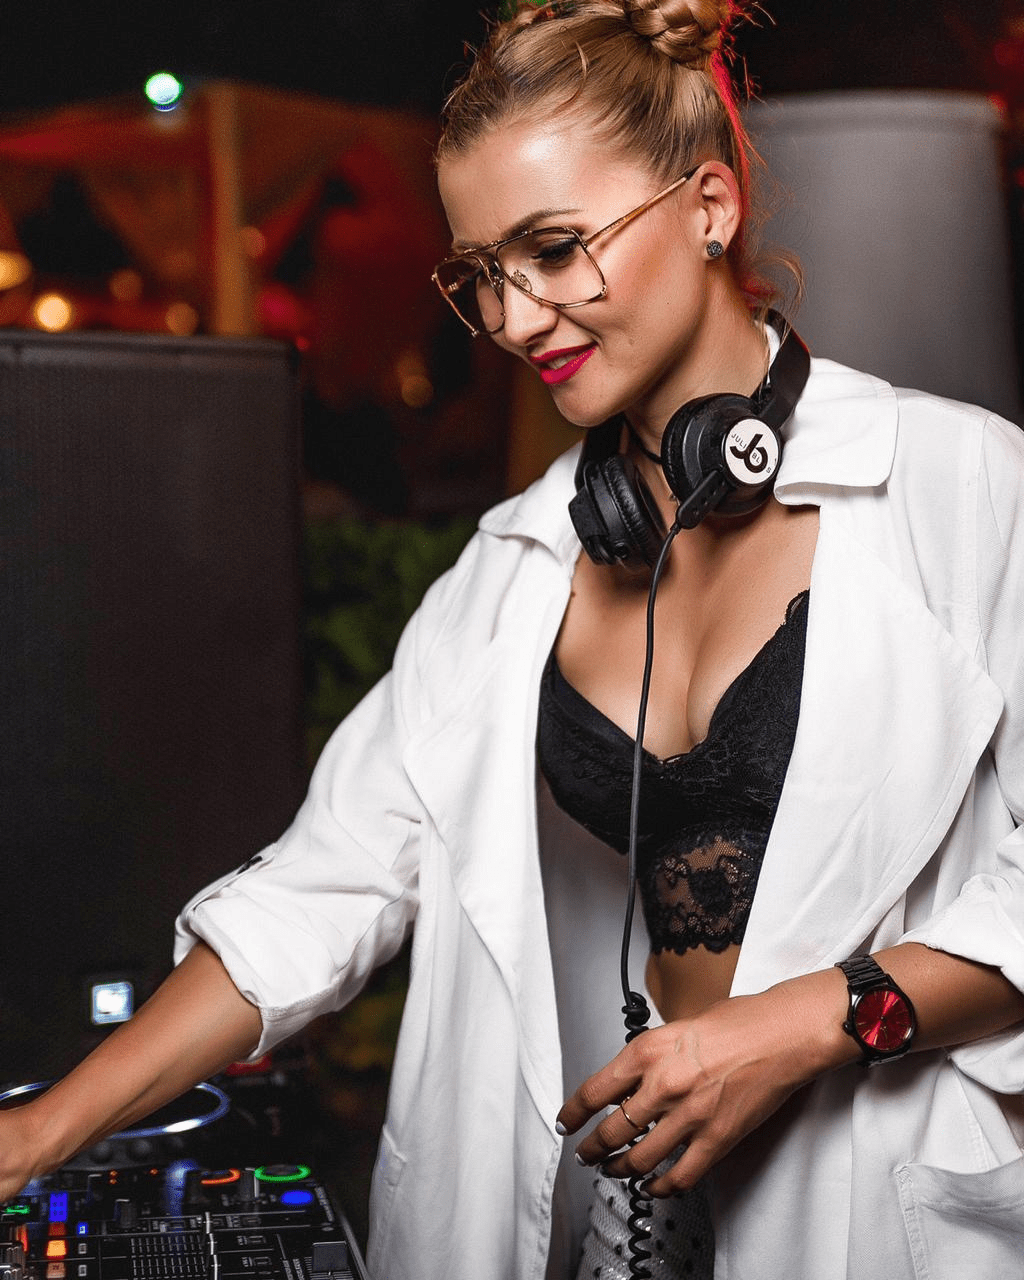 Julia Bliss Awarded With WOW Awards For India's One Of Best Female DJ